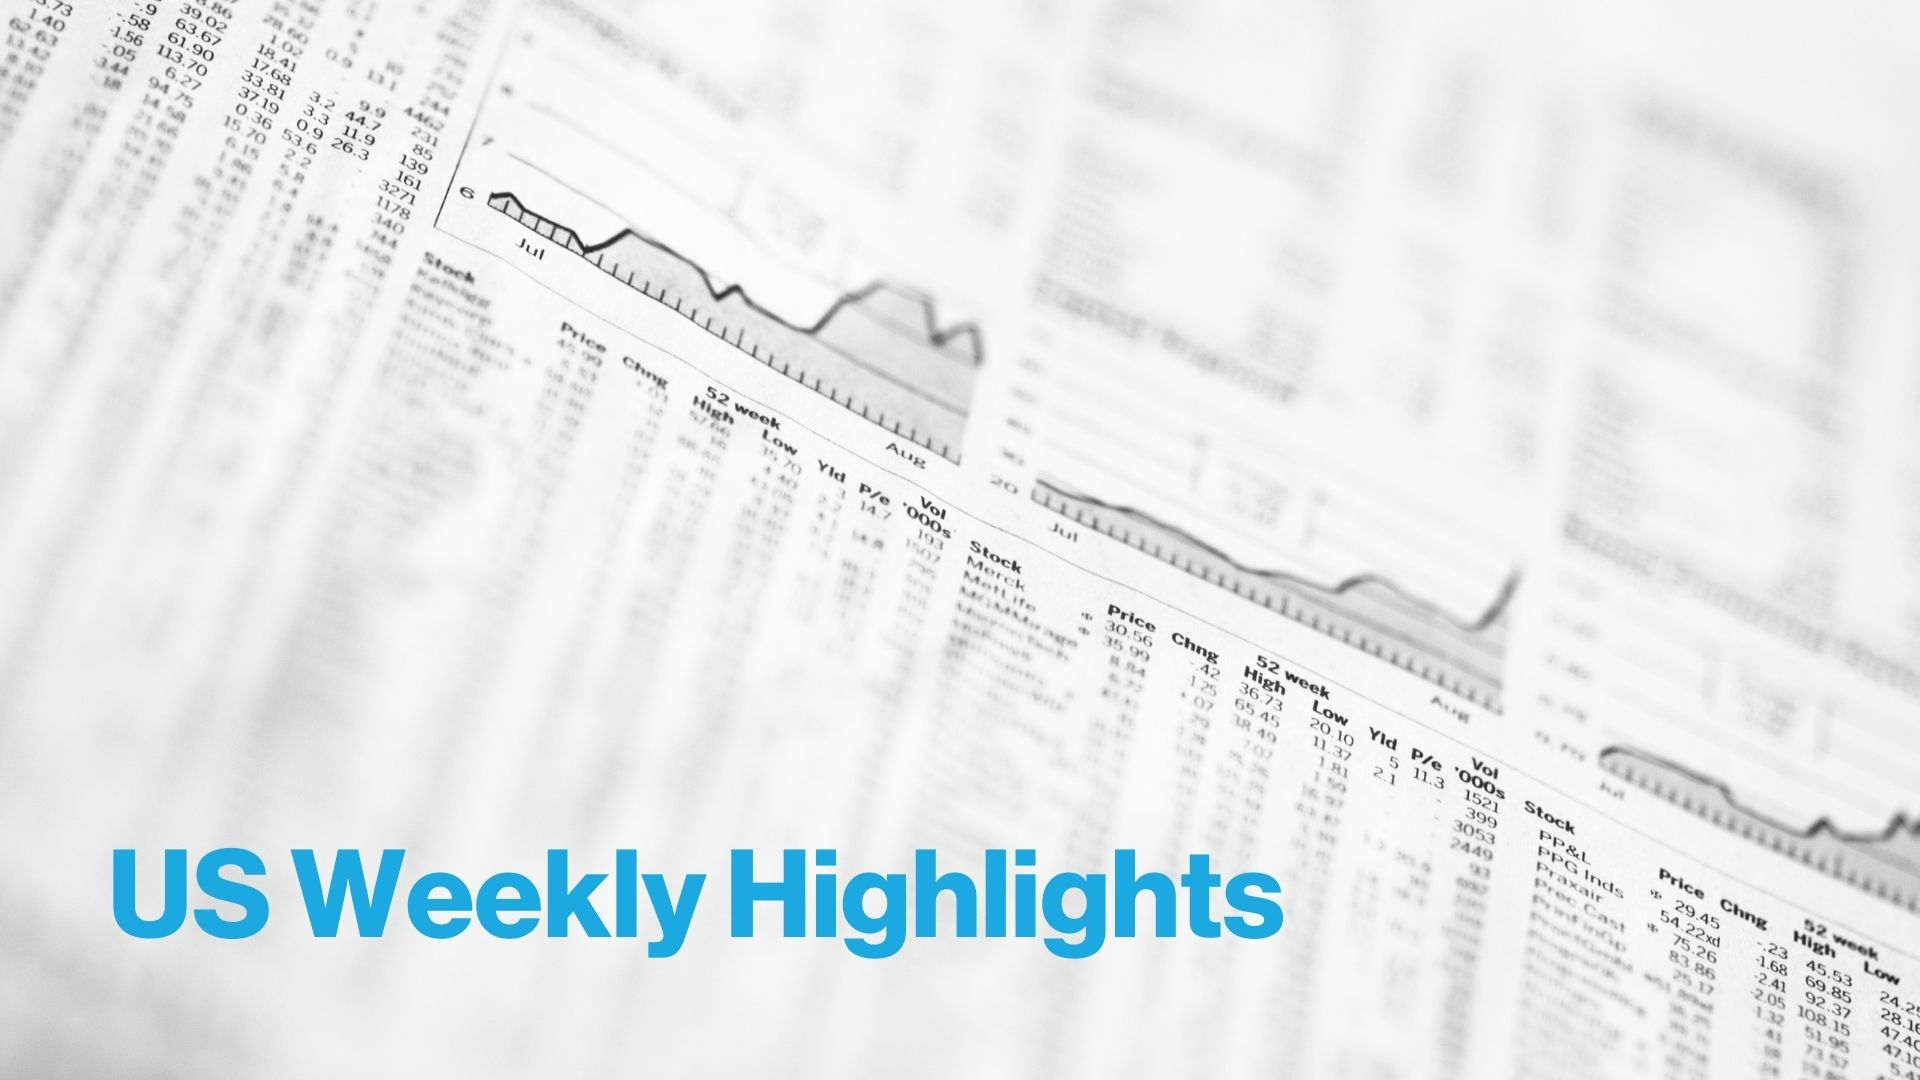 US stock market - weekly highlights by Smart Insider - blue